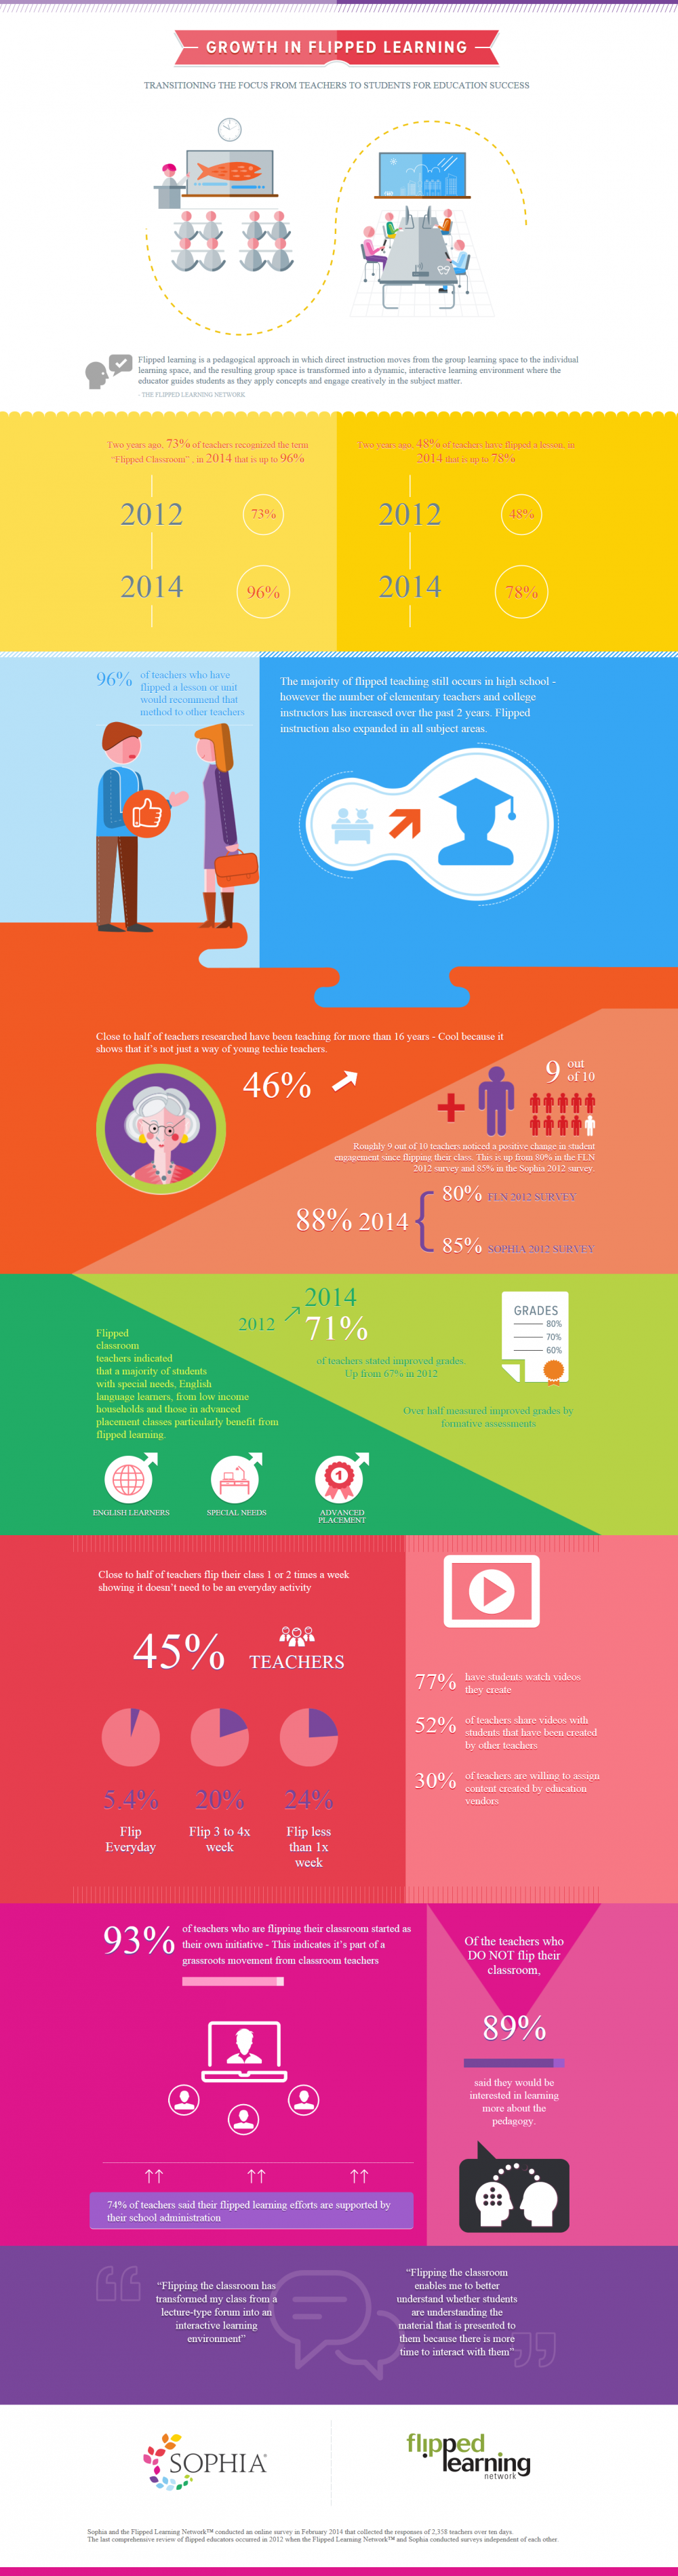 Growth-in-Flipped-Learning-Infographic-1000x3799